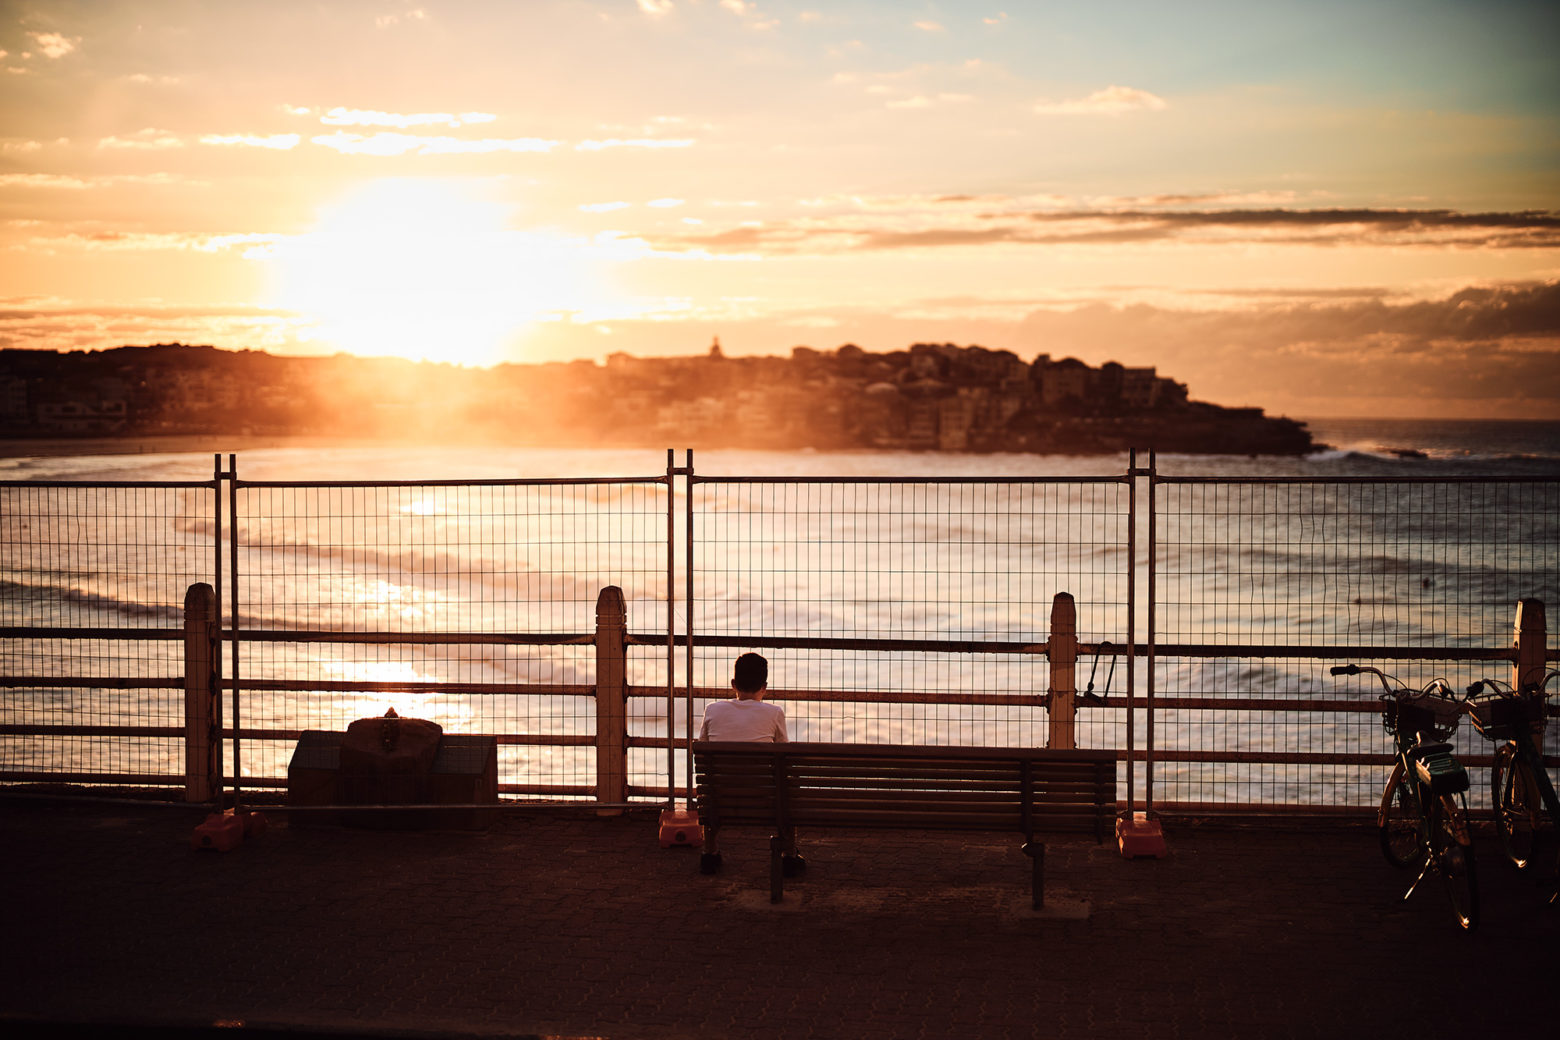 Bondi 7:20am, that fence needs to come down